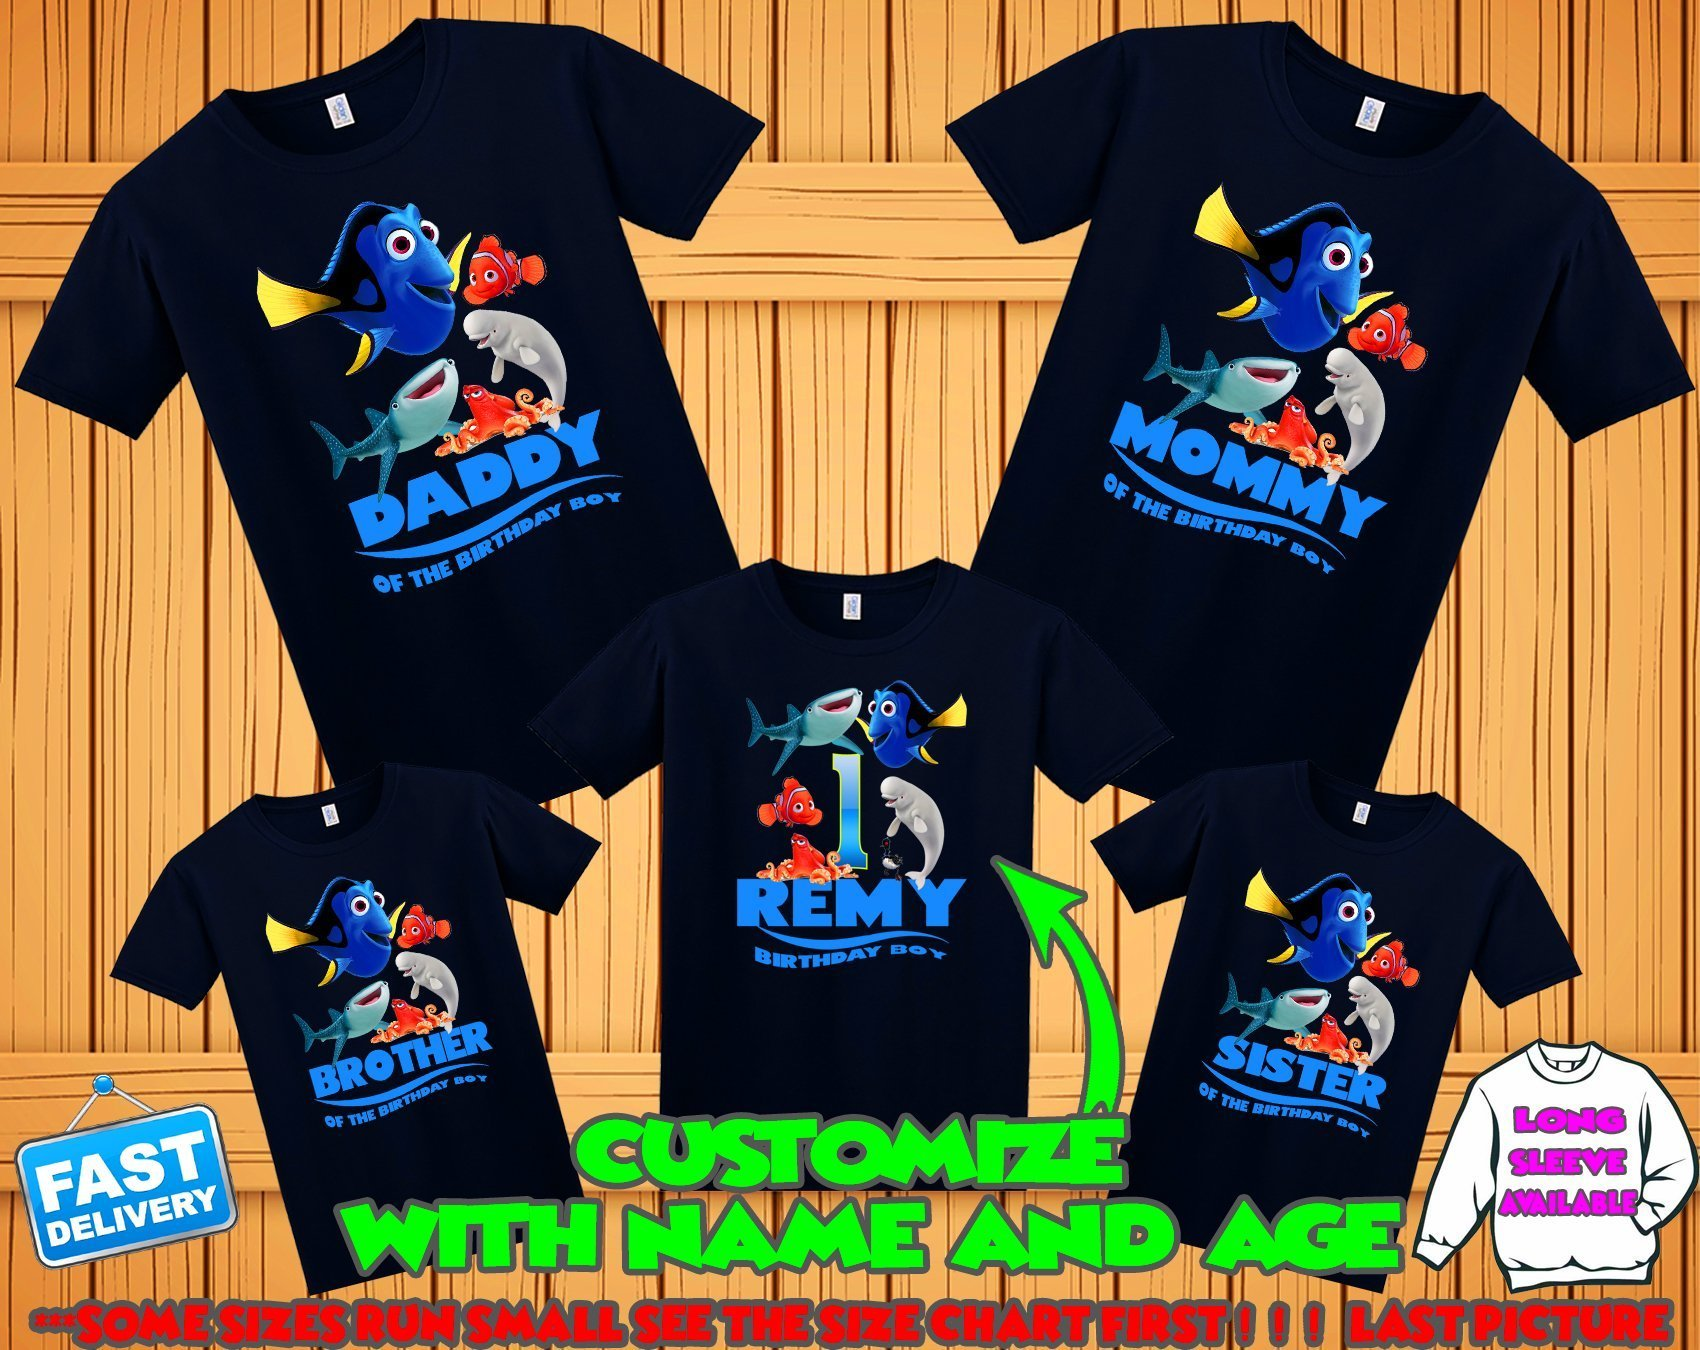 Finding Dory birthday shirt, Finding Dory family shirts, Finding Dory theme party shirts, Finding Dory matching shirts, Finding nemo t-shirt by Birthday T-shirts